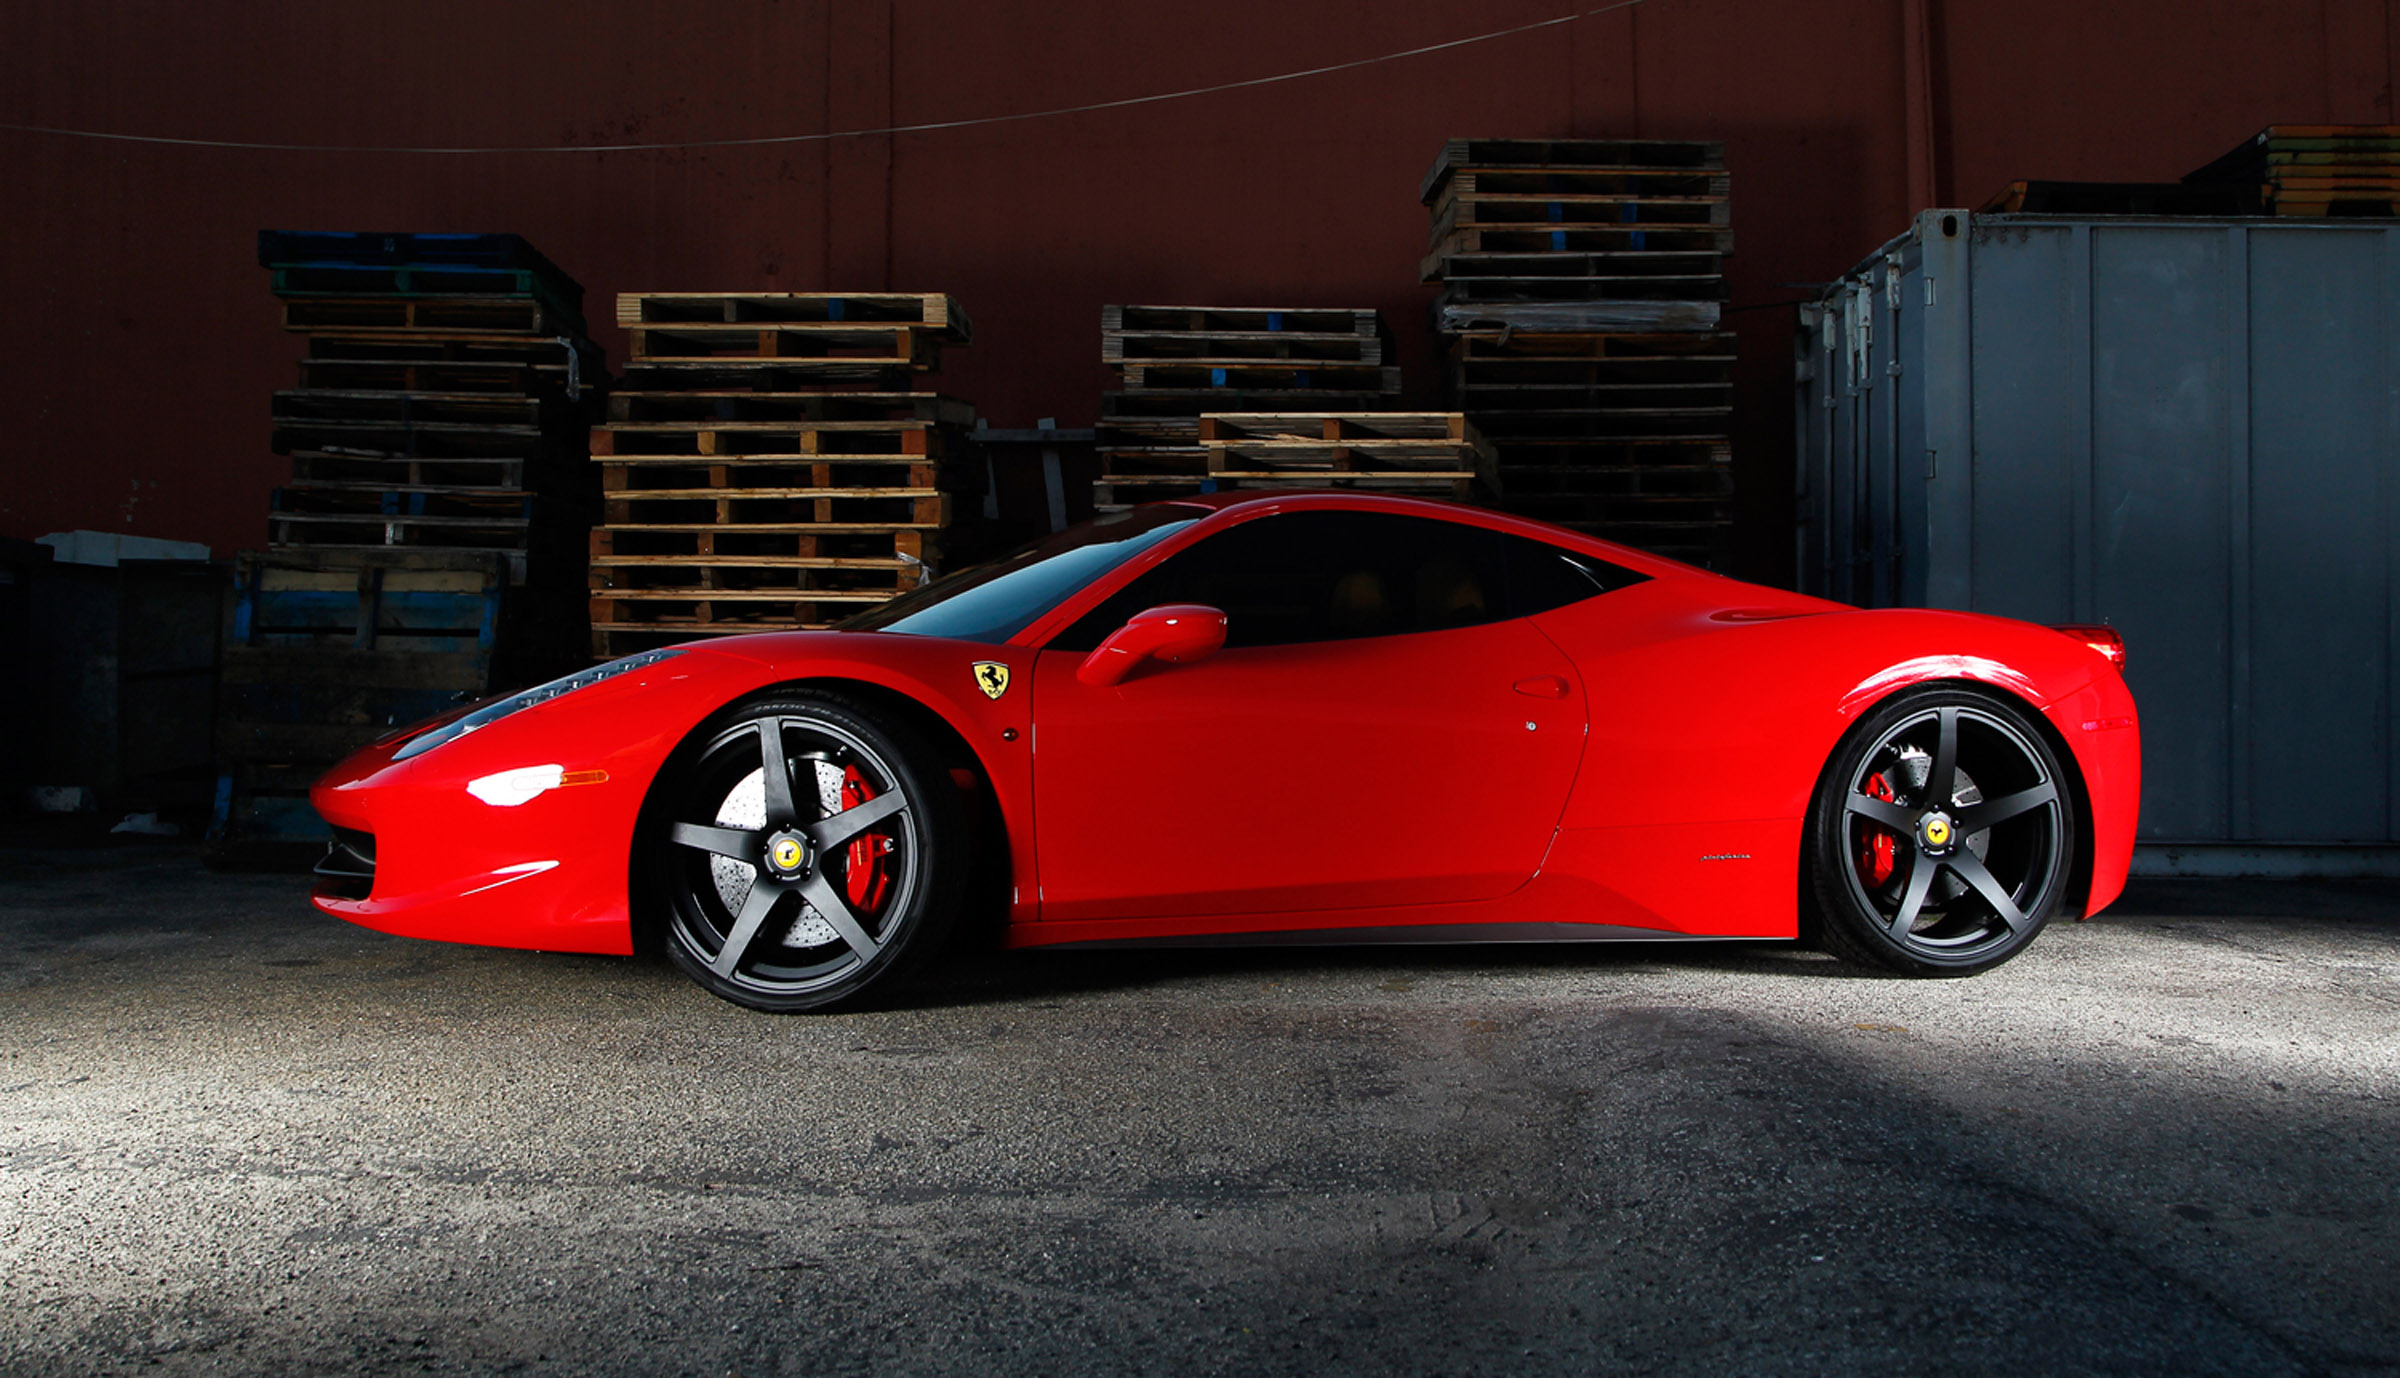 Vorsteiner Vs 130 Series For Ferrari 458 Italia And Bmw